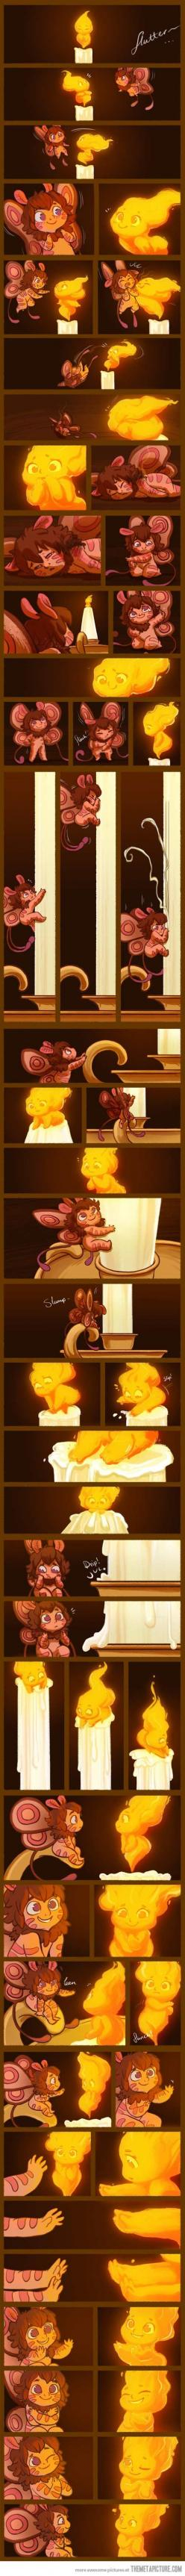 The Moth And The Flame... Full story at   http://stressedjenny.deviantart.com/art/Moth-and-the-Flame-1-347299491: Candle, Ship It, Ships Fandom, Ship Flamoth, Cutest Things, Cute Moth Flame Story Tale, Cute Comic, Beautiful Things